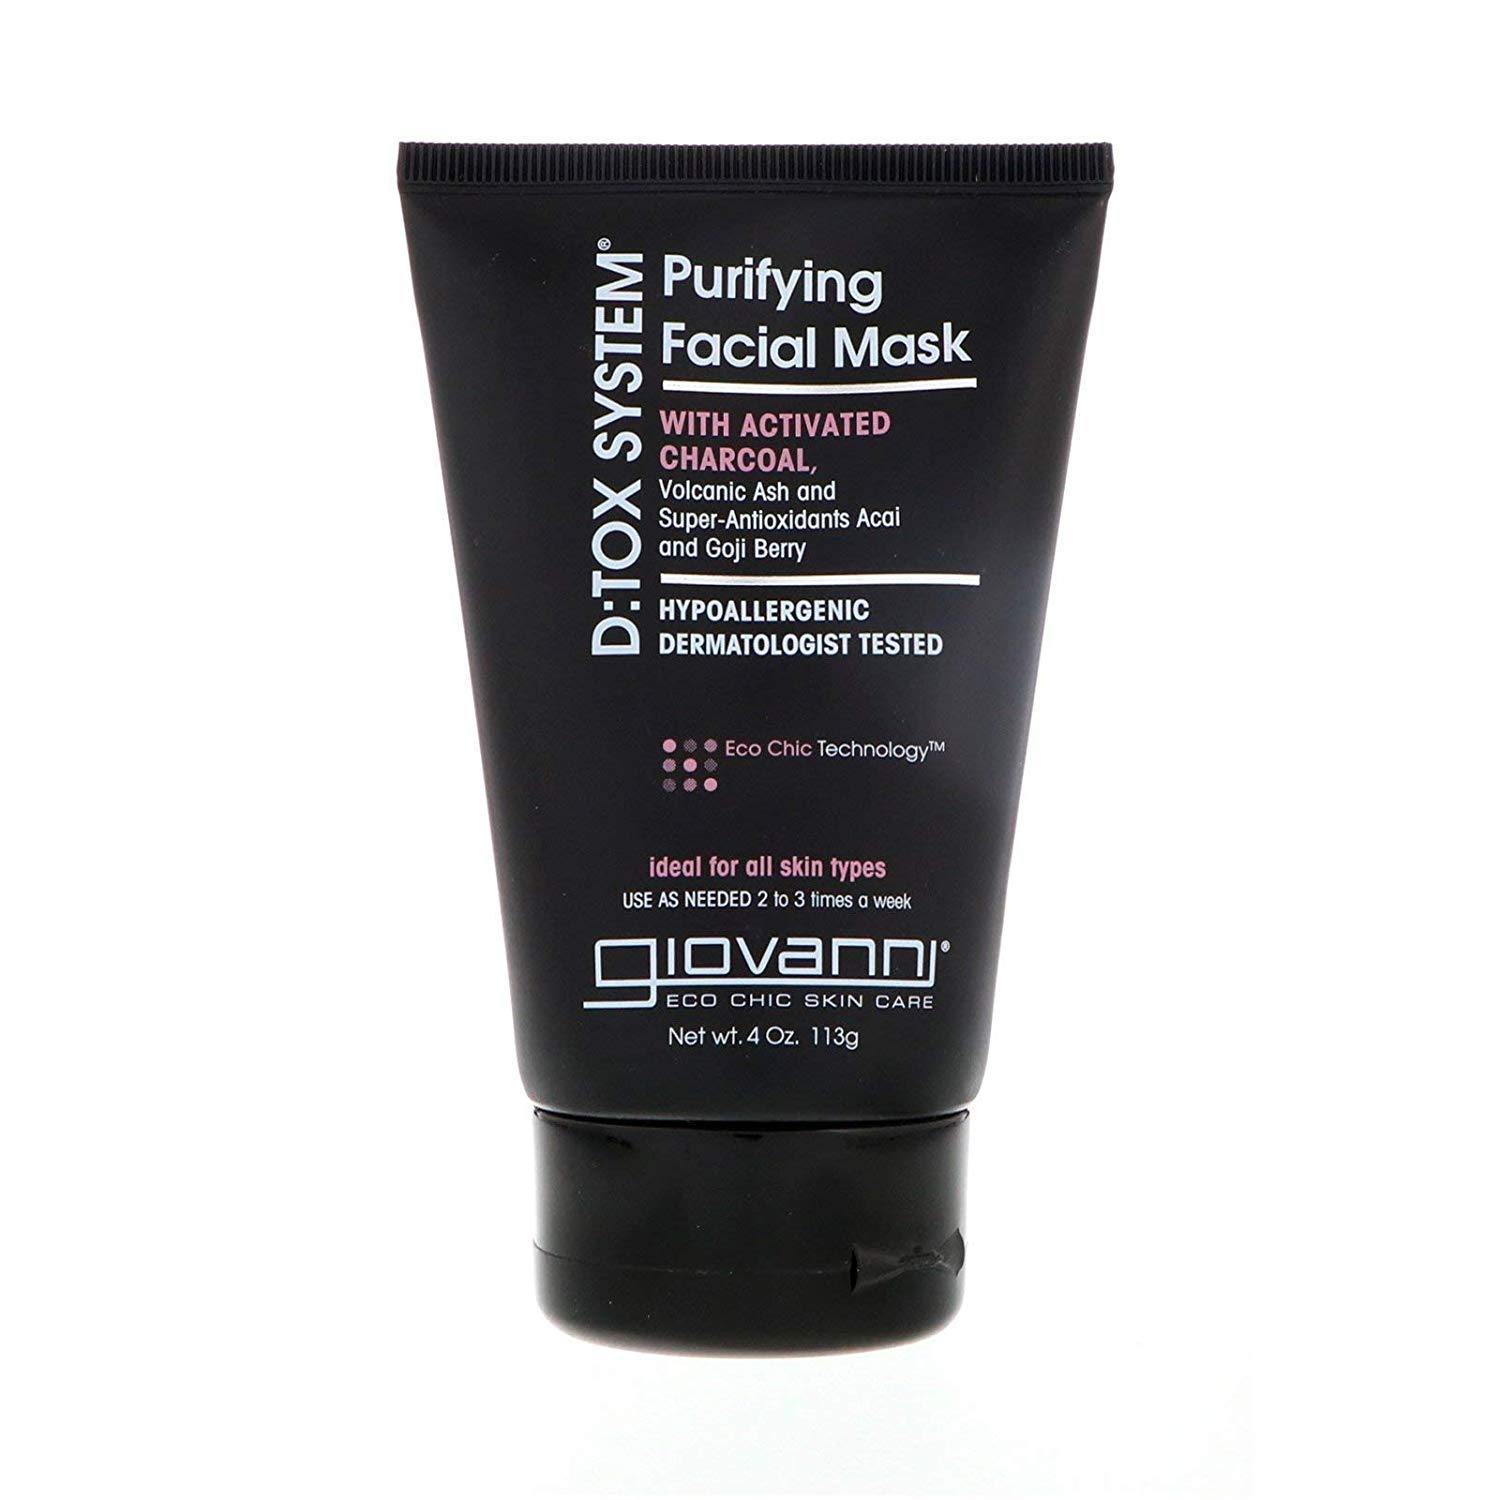 Amazon.com : Giovanni Purifying Facial Mask - Dermatologist Tested D:Tox  System 4 Ounce (Pack of 1) : Freeman Facial Mask : Beauty